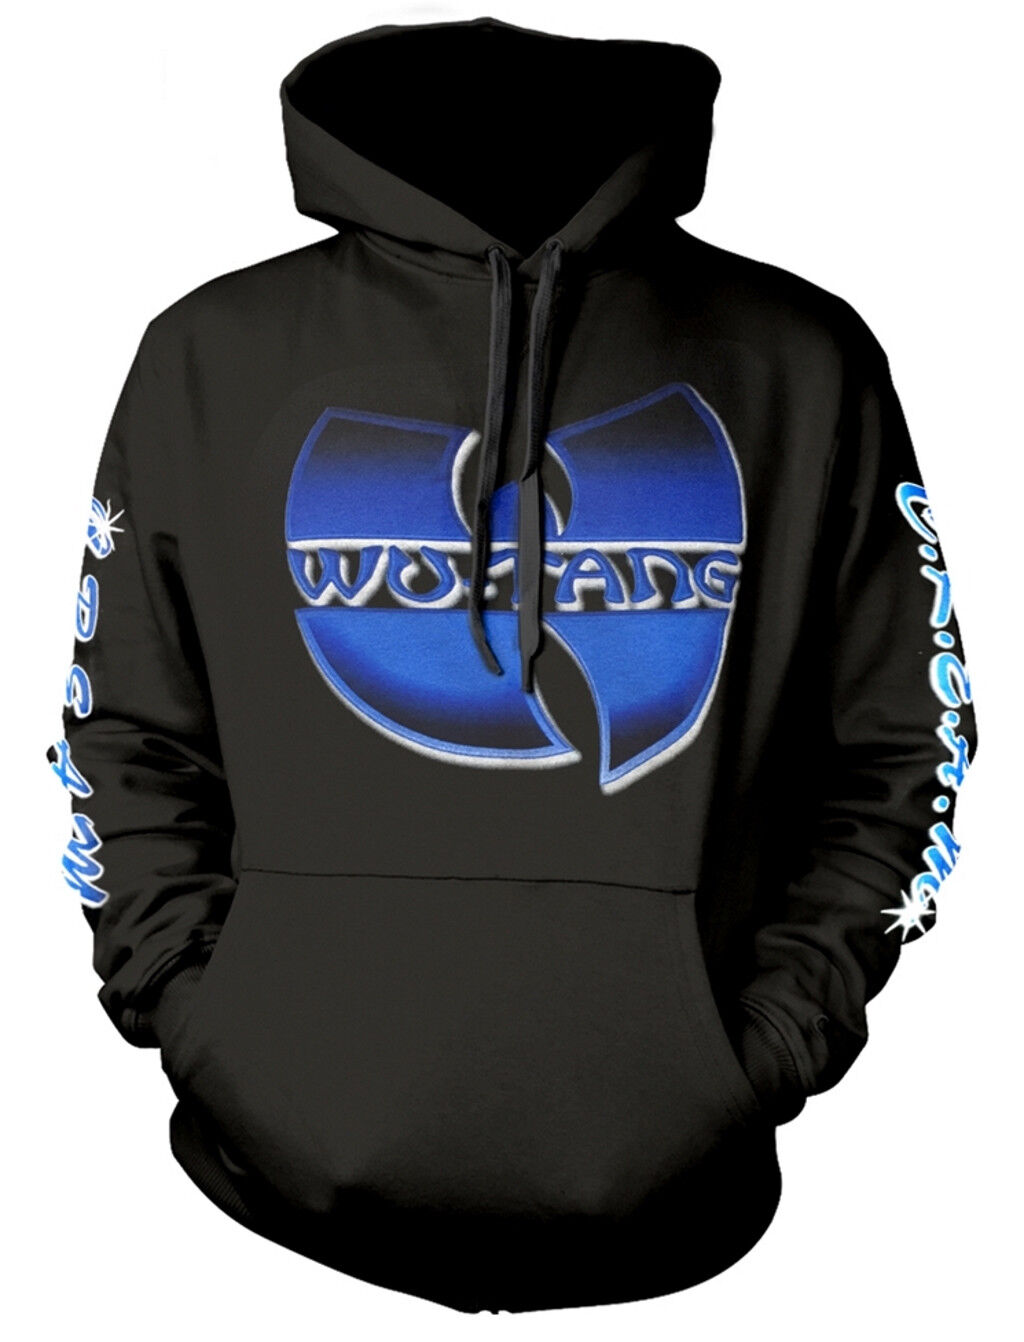 Wu-Tang Clan 'C.R.E.A.M.' Pull Over Hoodie - NEW & OFFICIAL!